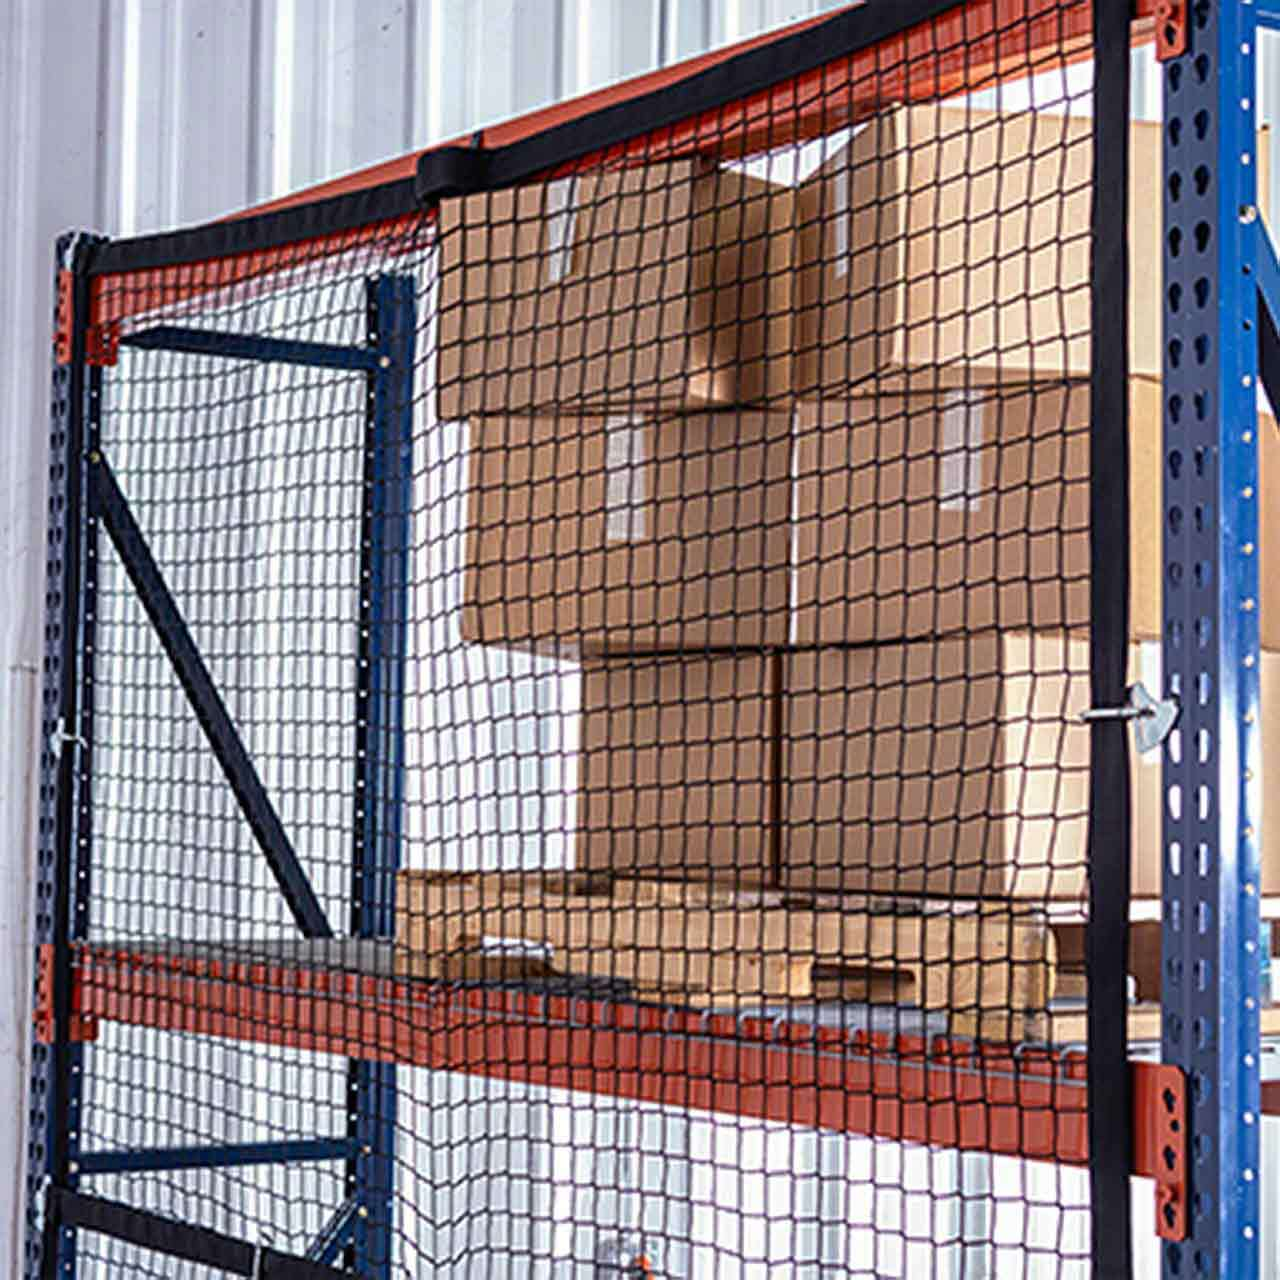 Modular pallet rack safety netting keeps loose items from falling